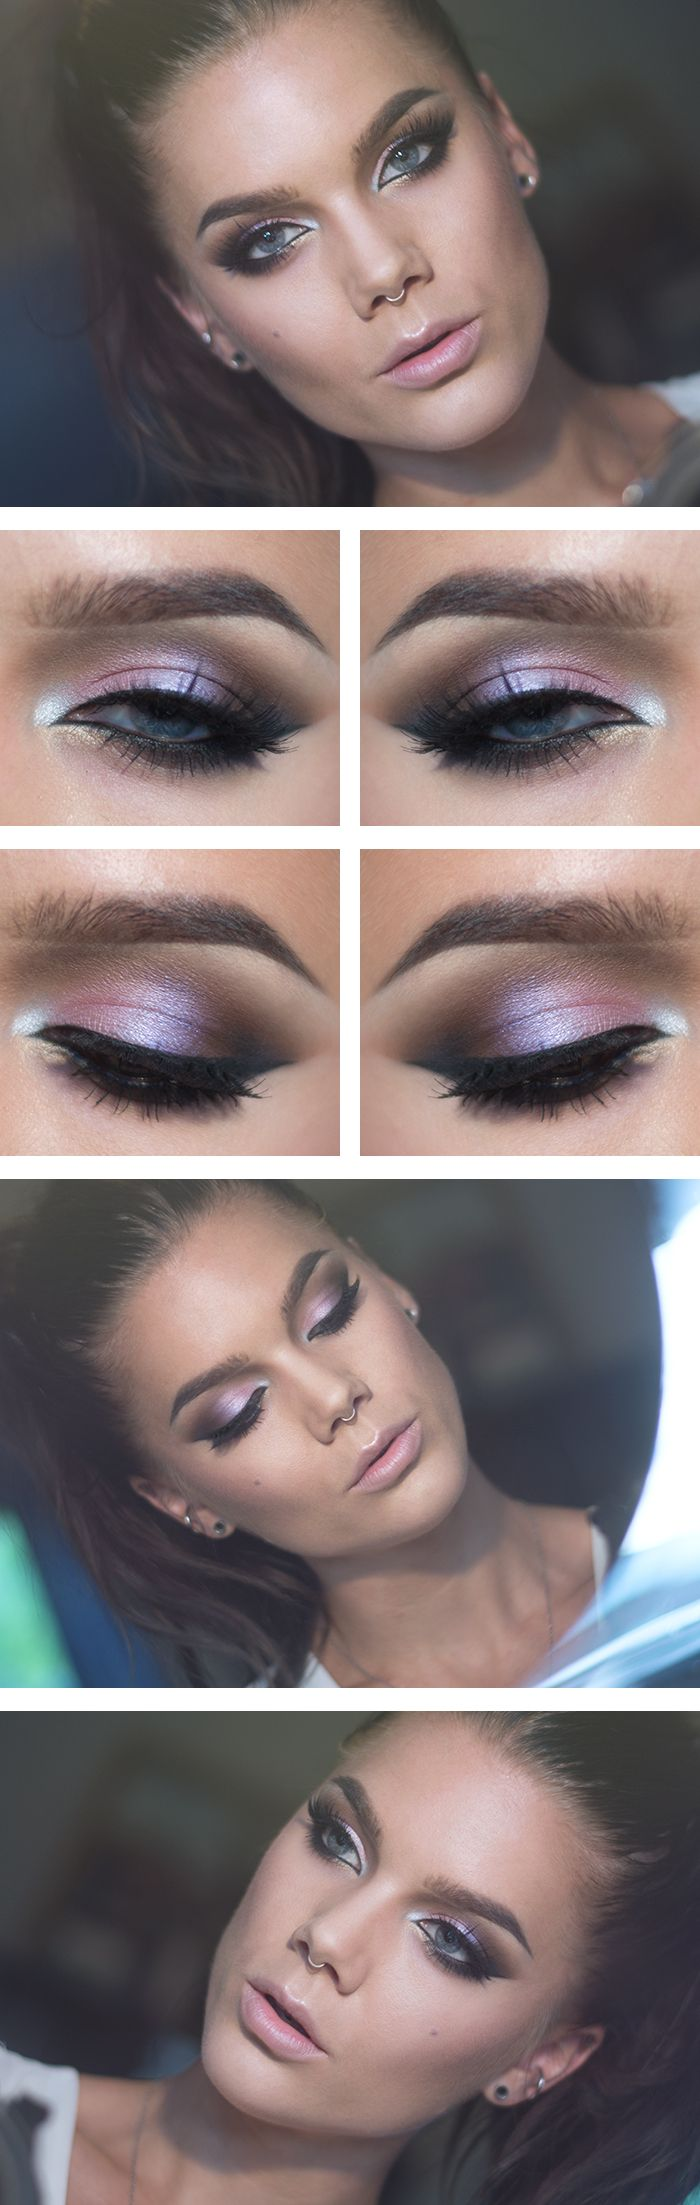 Todays look Siren - Linda Hallberg the girl is a queen of cat-eye... so amazingly beautiful... NEW Real Techniques brushes makeup -$10 http://youtu.be/PQZ9X6r5O7M #realtechniques #realtechniquesbrushes #makeup #makeupbrushes #makeupartist #brushcleaning #brushescleaning #brushes